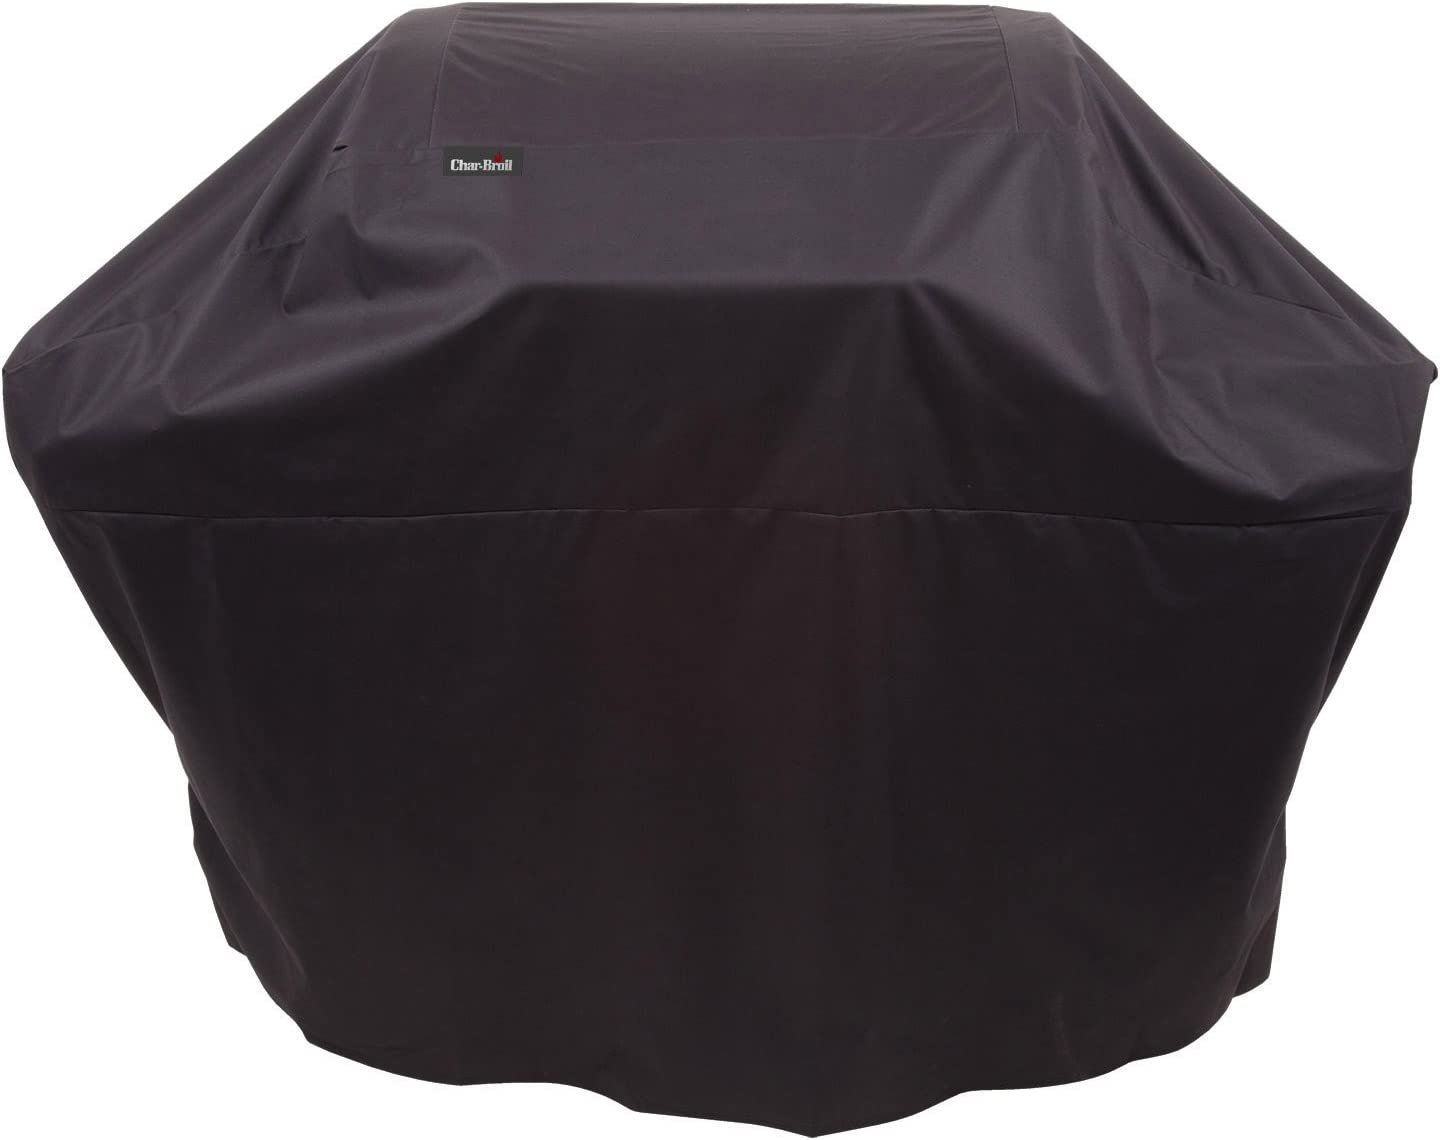 Char Broil All-Season Grill Cover, 3-4 Burner: Large : Garden & Outdoor